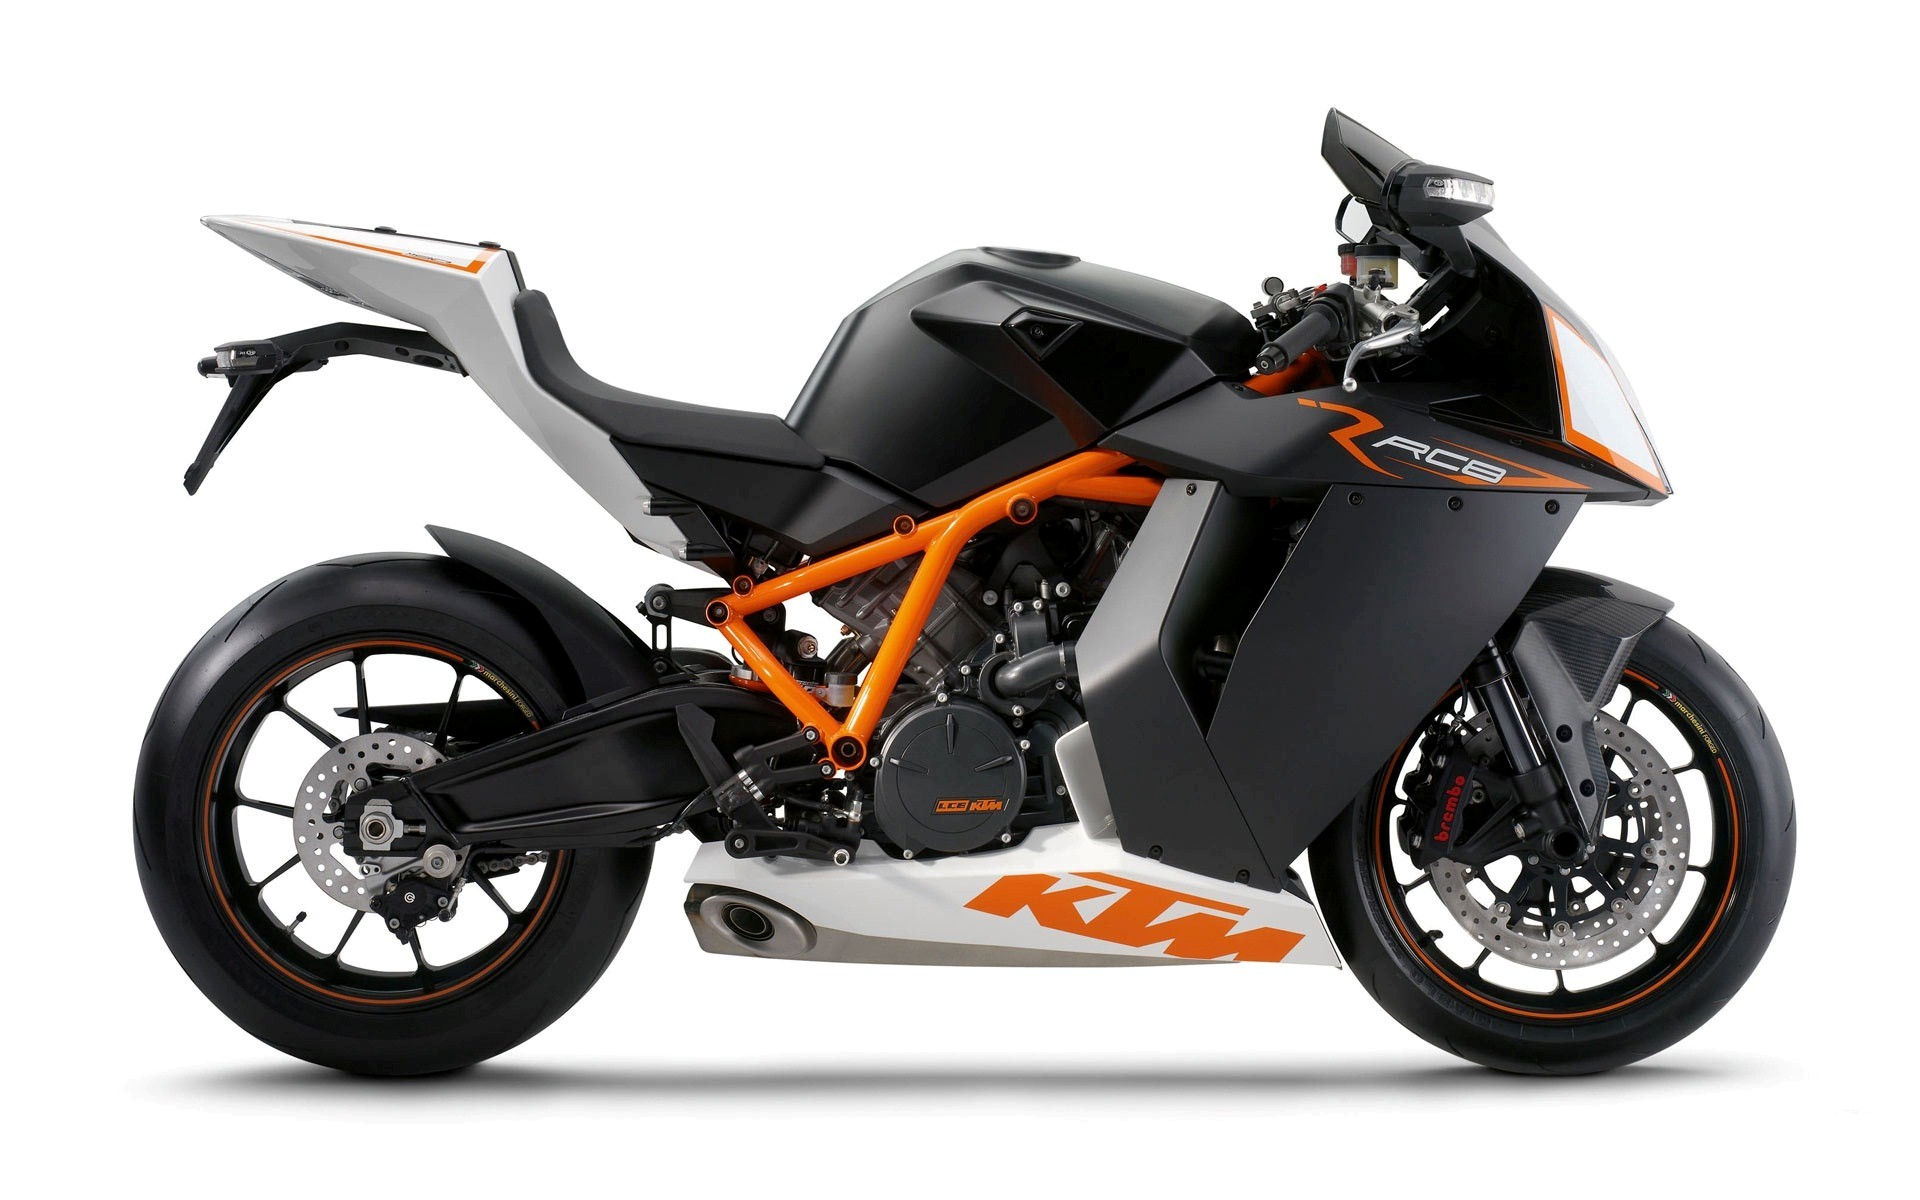 KTM_RC8 bike nice pictures